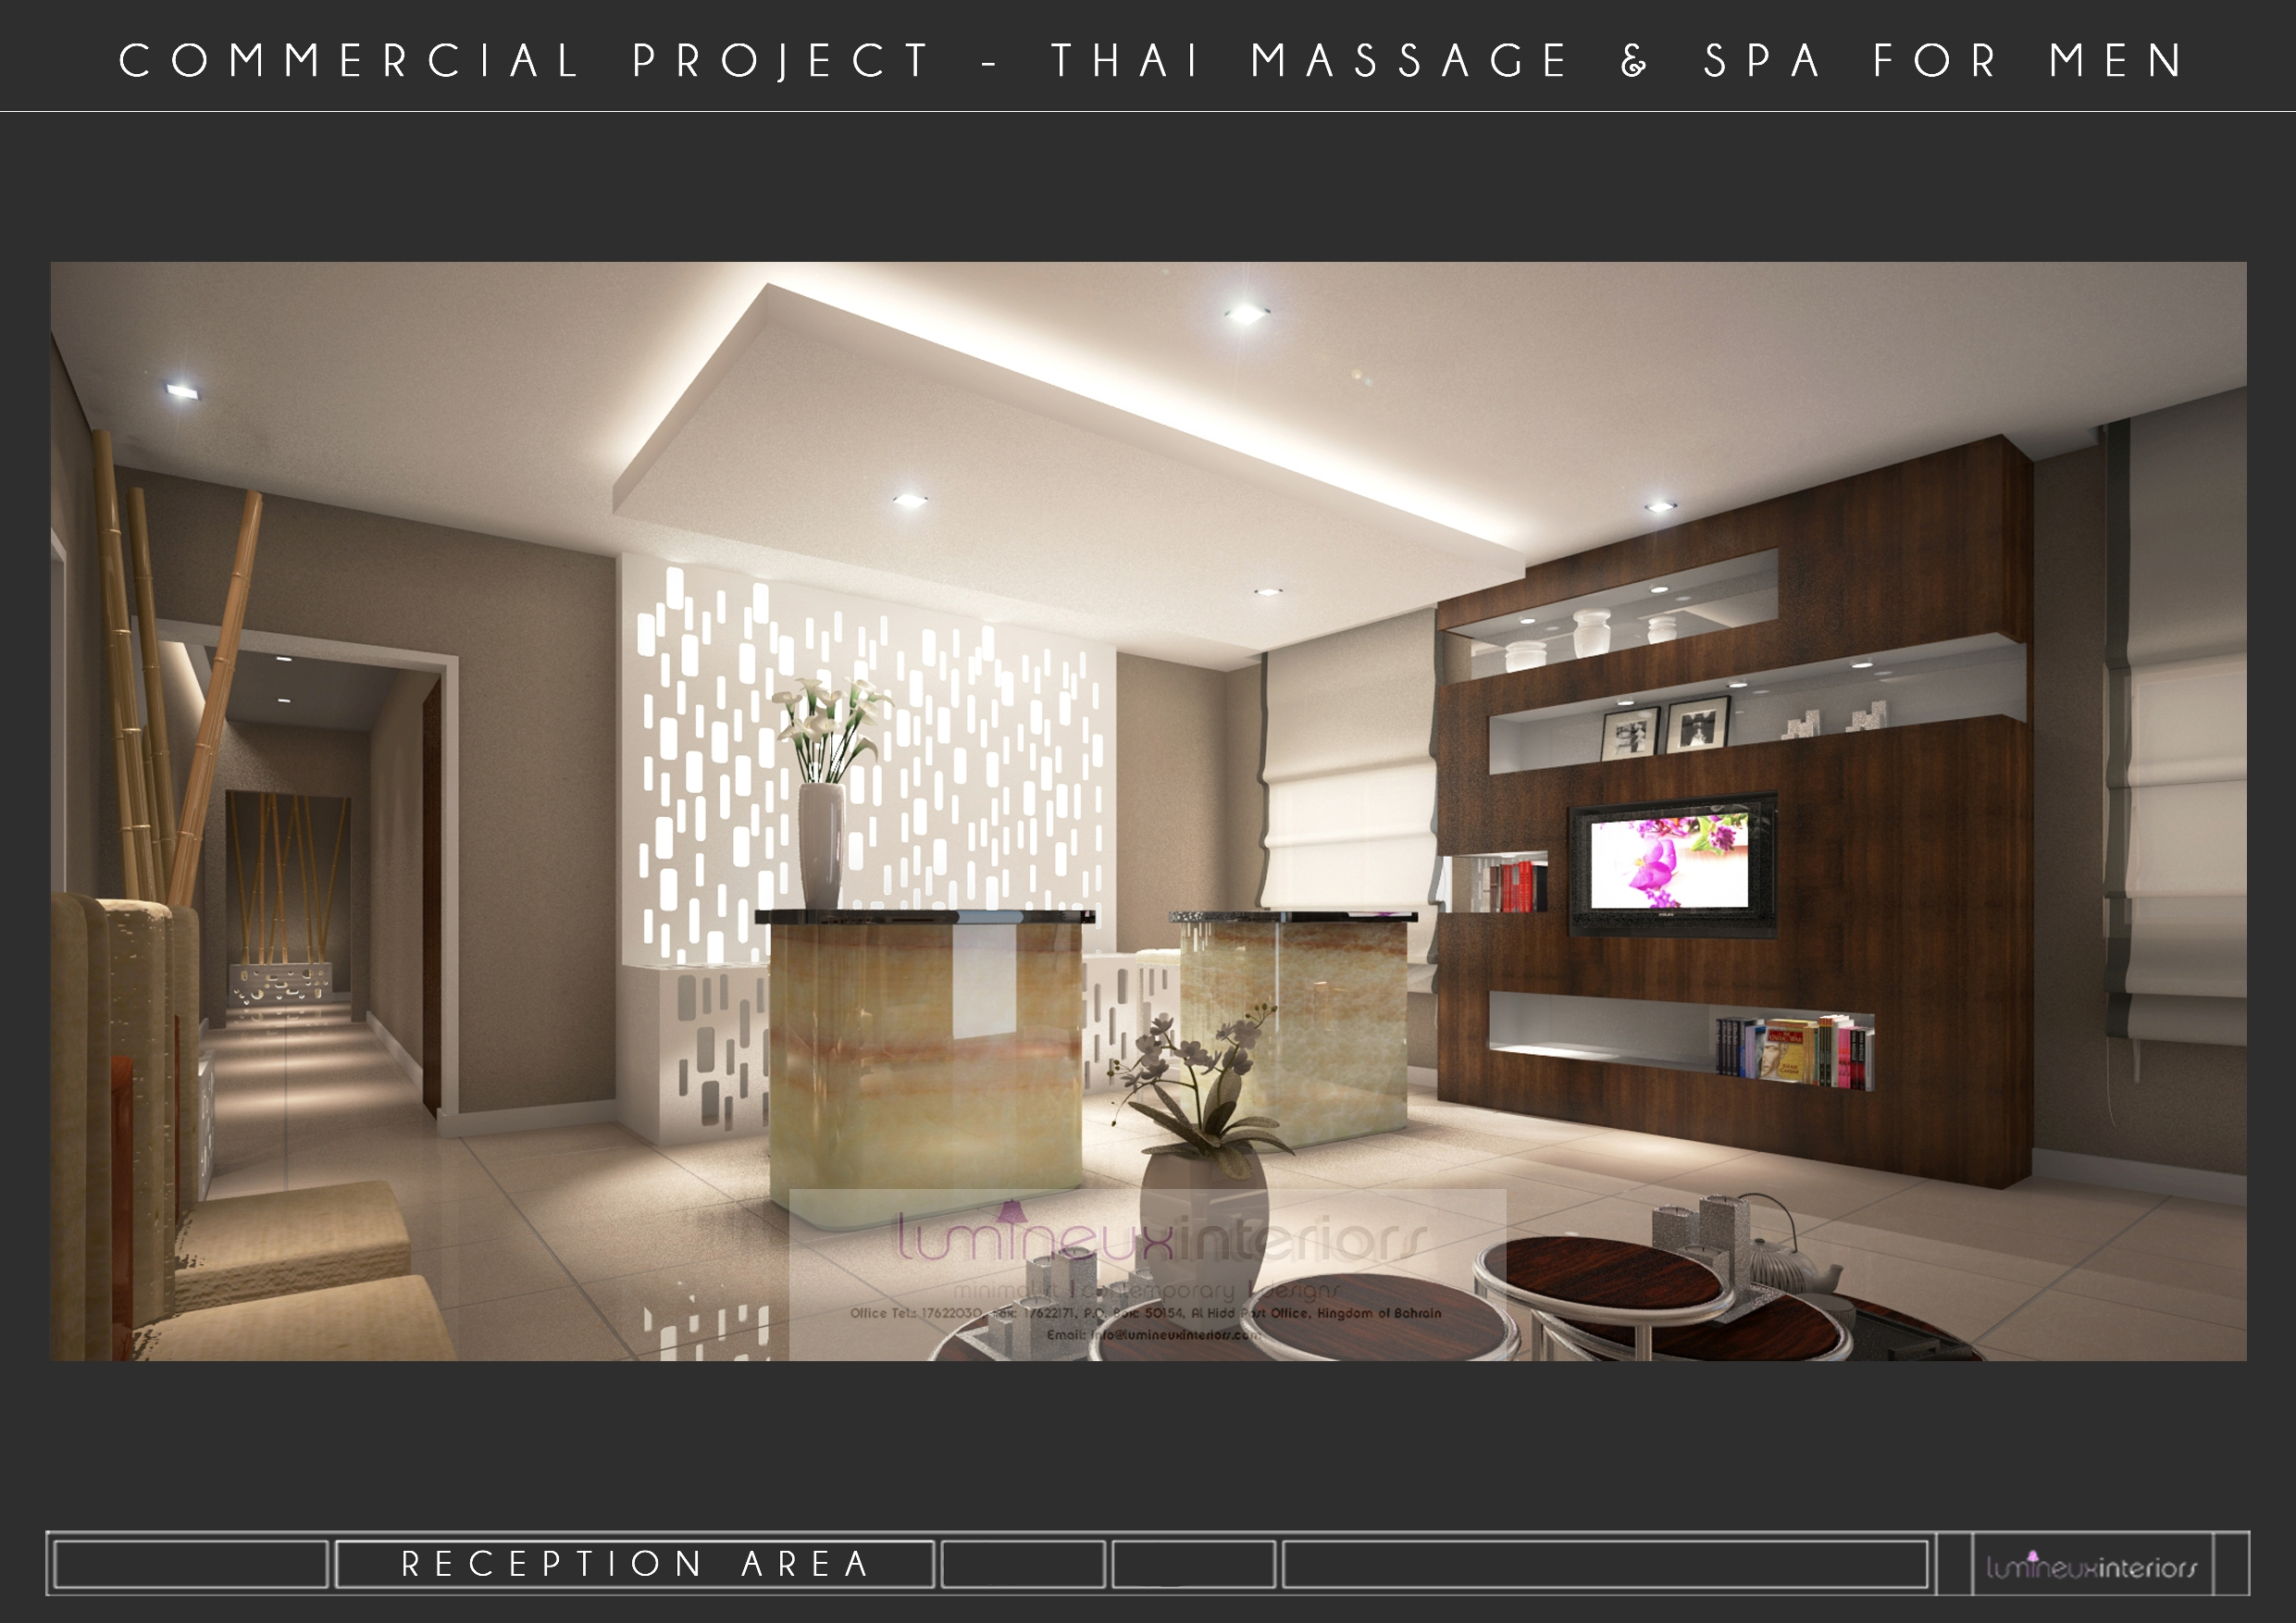 Thai Massage & Spa for Men